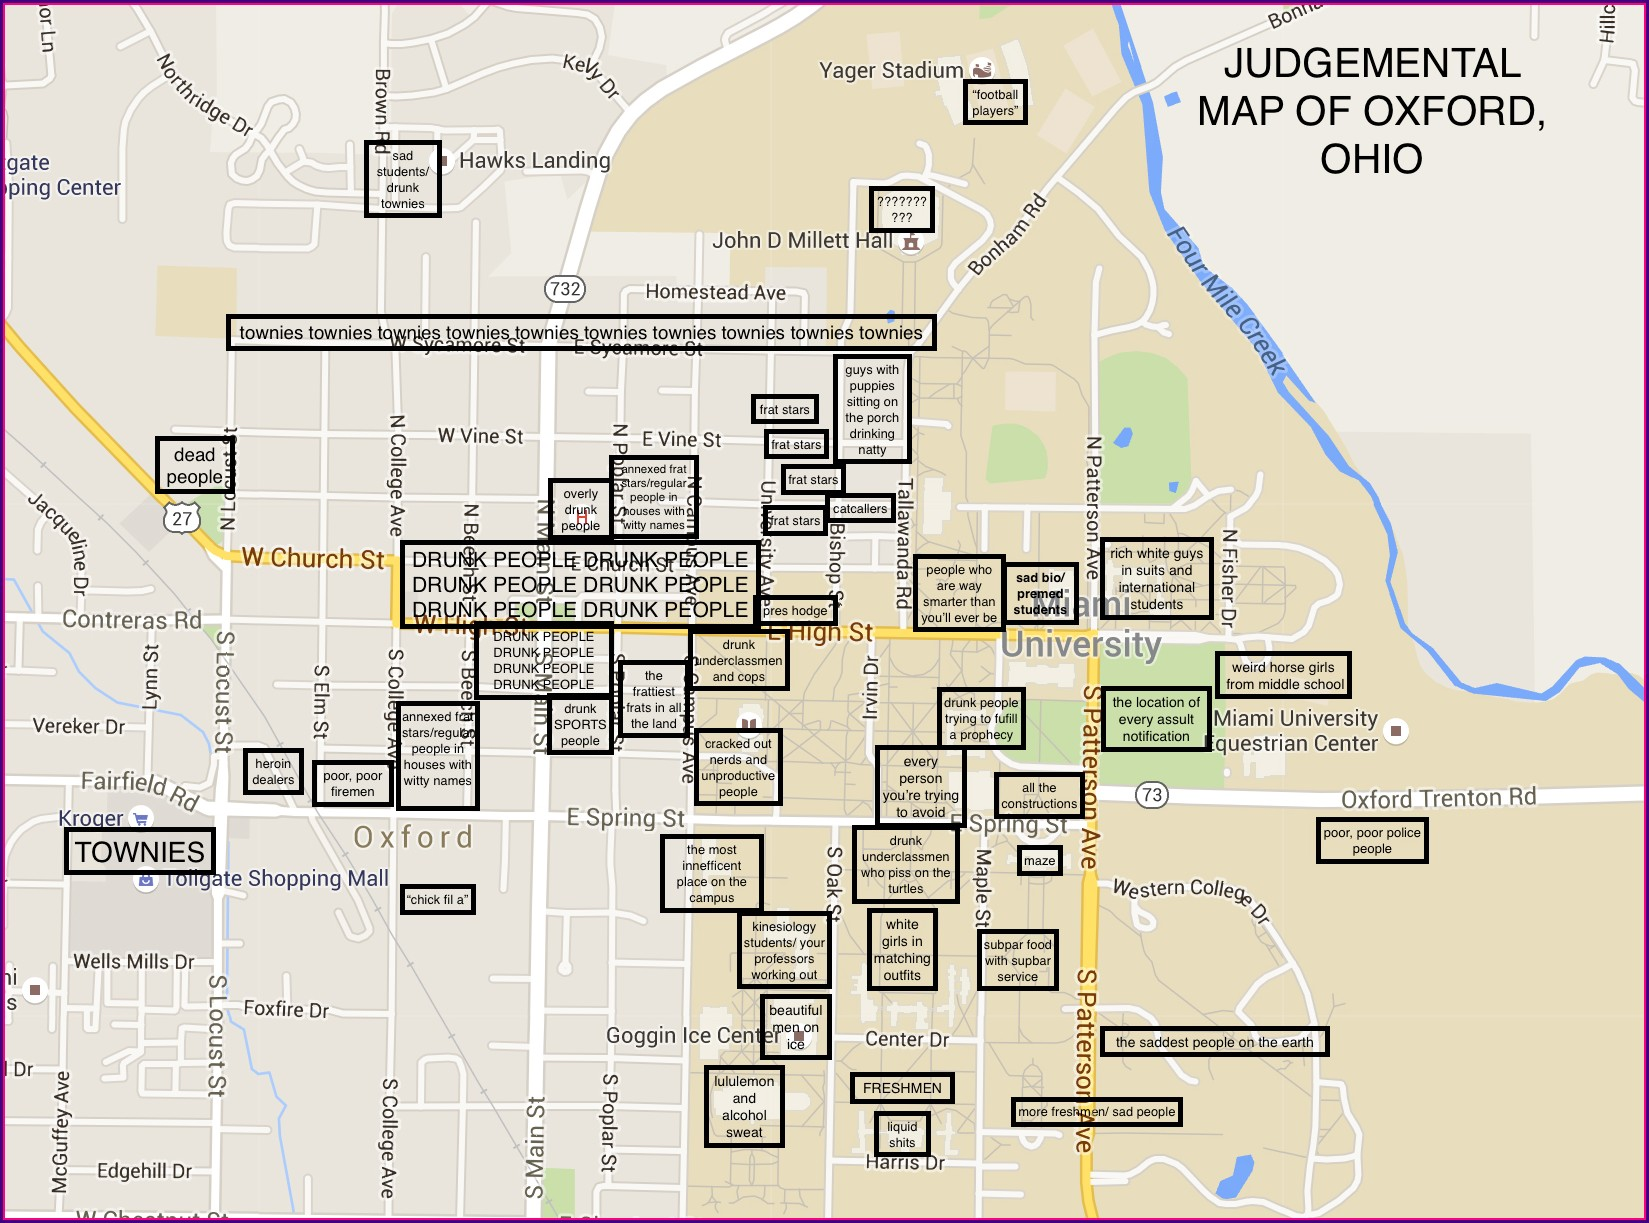 Ole Miss Campus Map Labeled